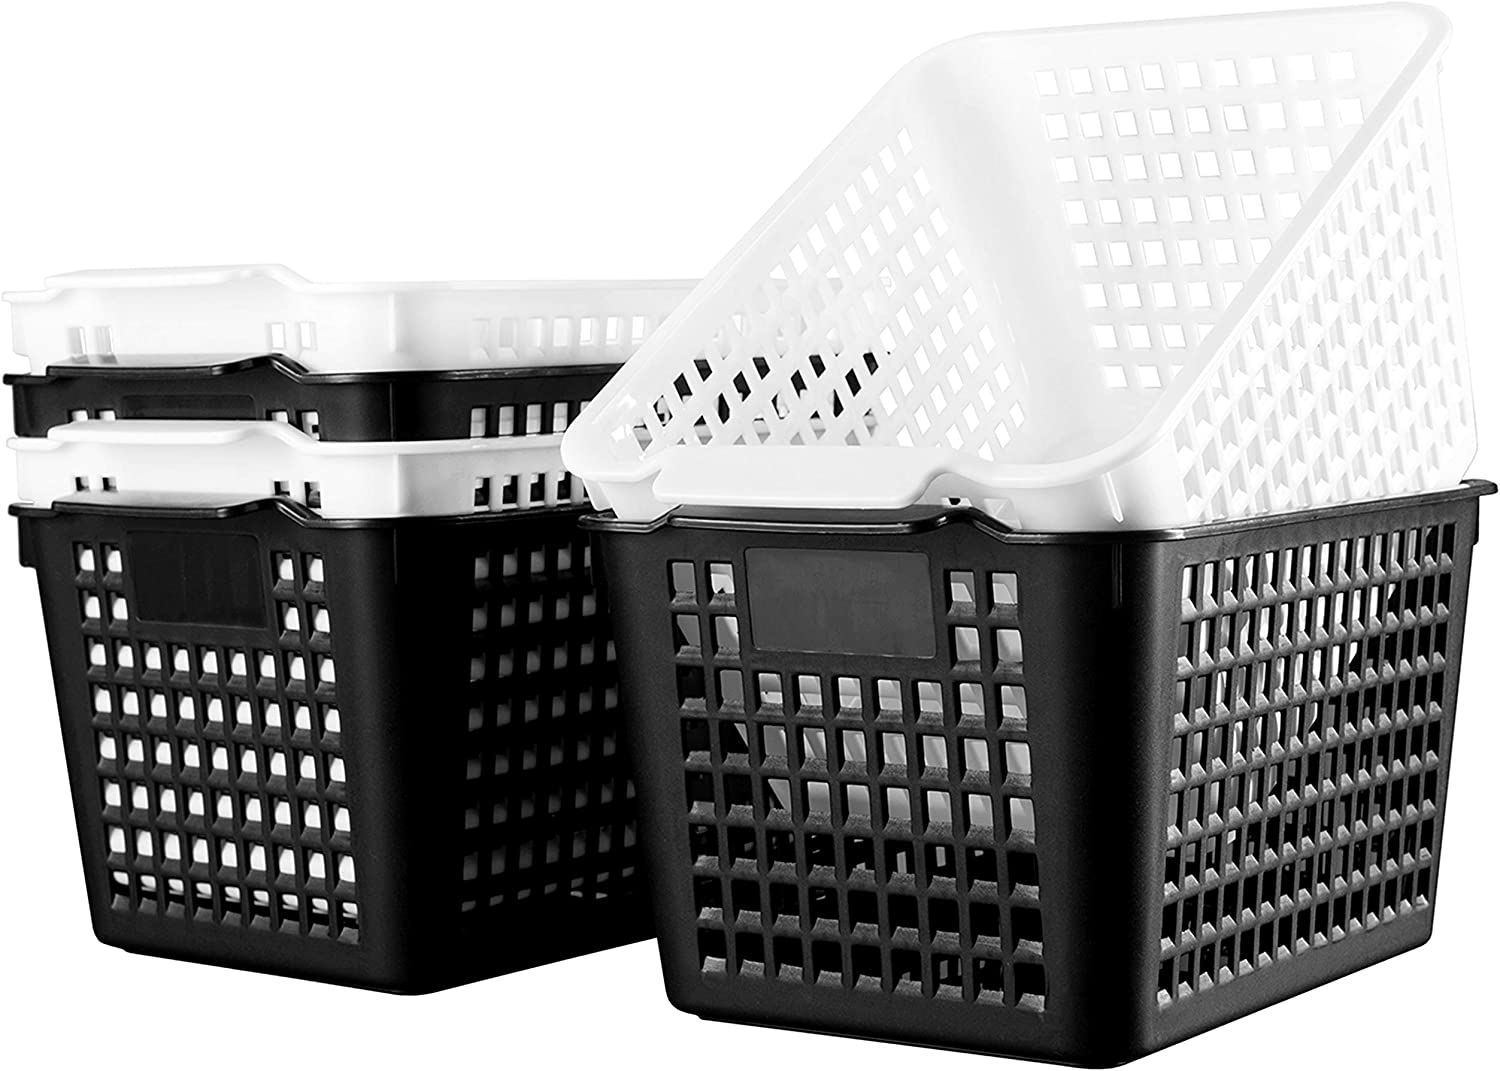 Deep Plastic Storage Shelf Basket Pack of 6, Desktop Organization Plastic Bins Black/White, Plastic Open Storage Baskets